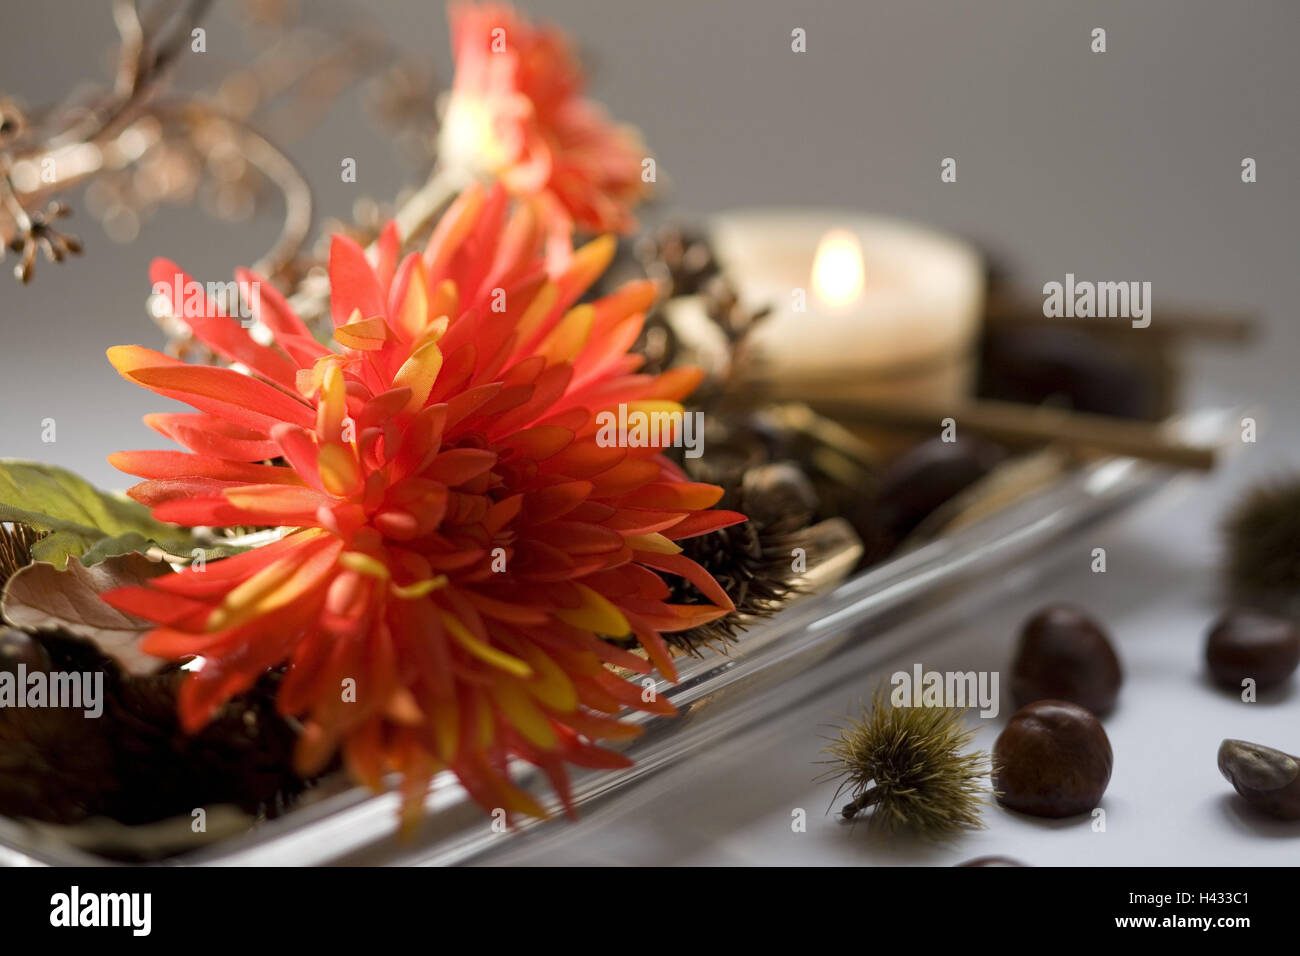 Candle Arrangement Flowers High Resolution Stock Photography And Images Alamy